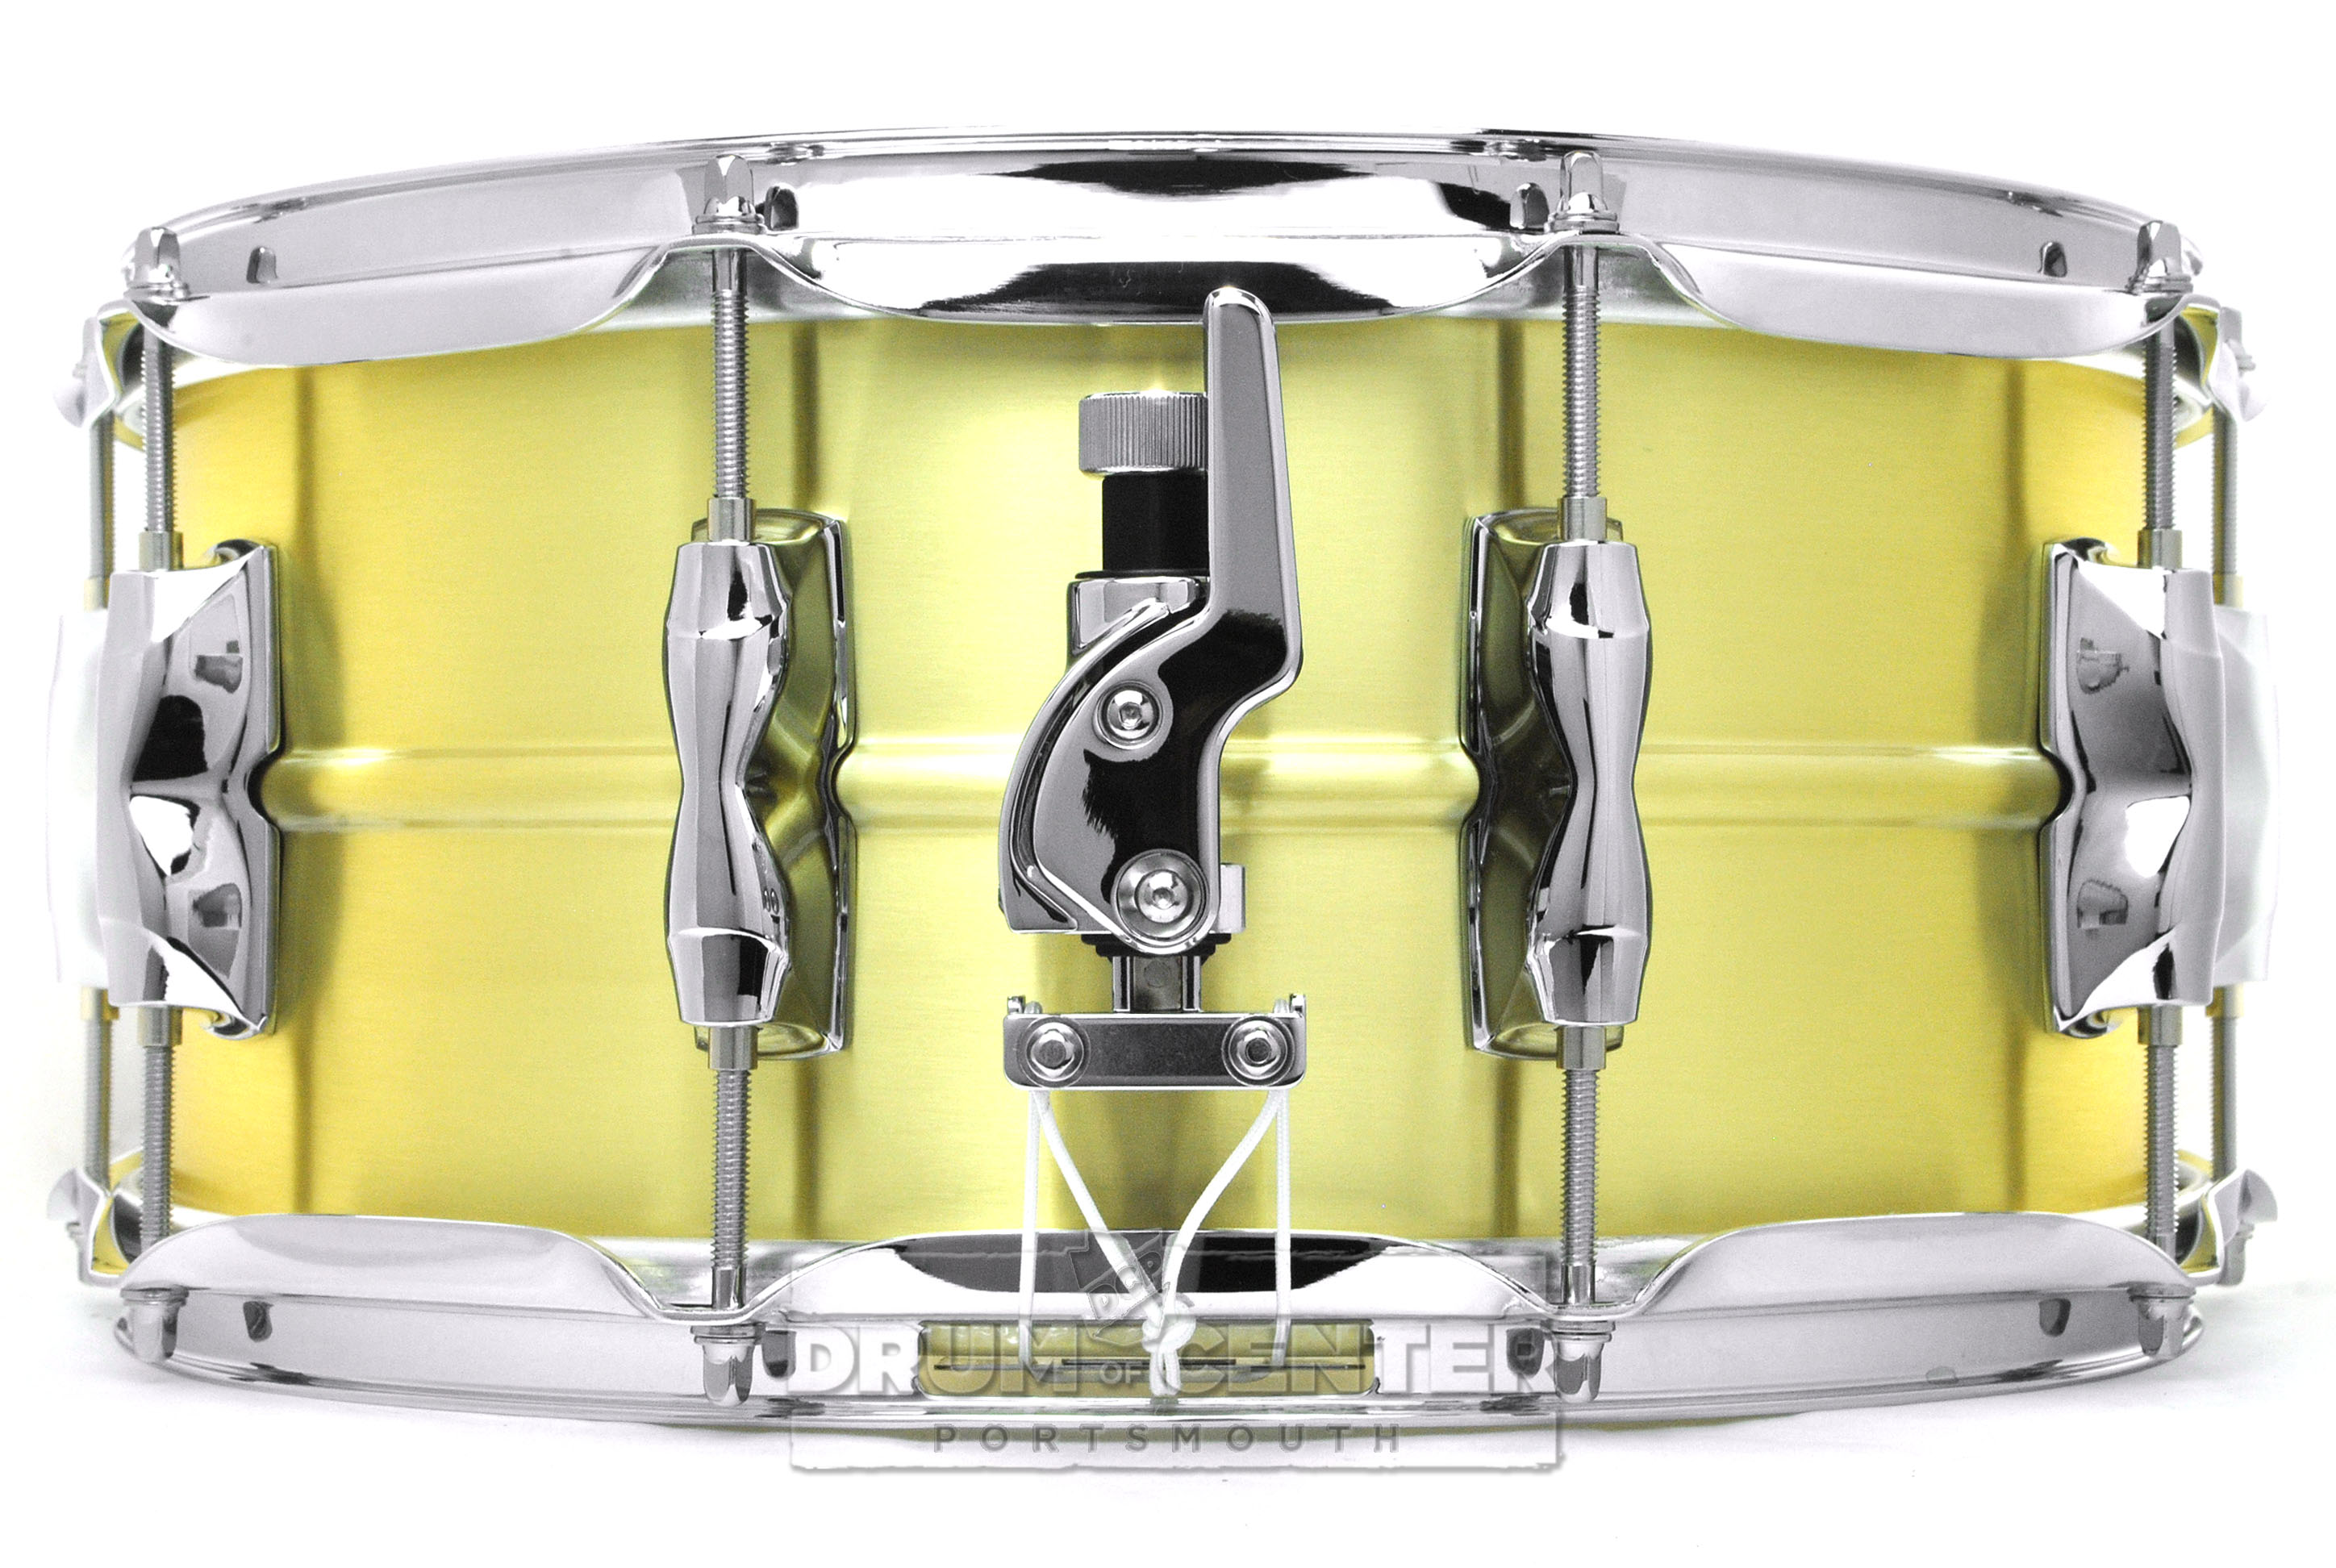 Yamaha recording custom brass snare drum 14x6 5 video for Yamaha stage custom steel snare drum 14x6 5